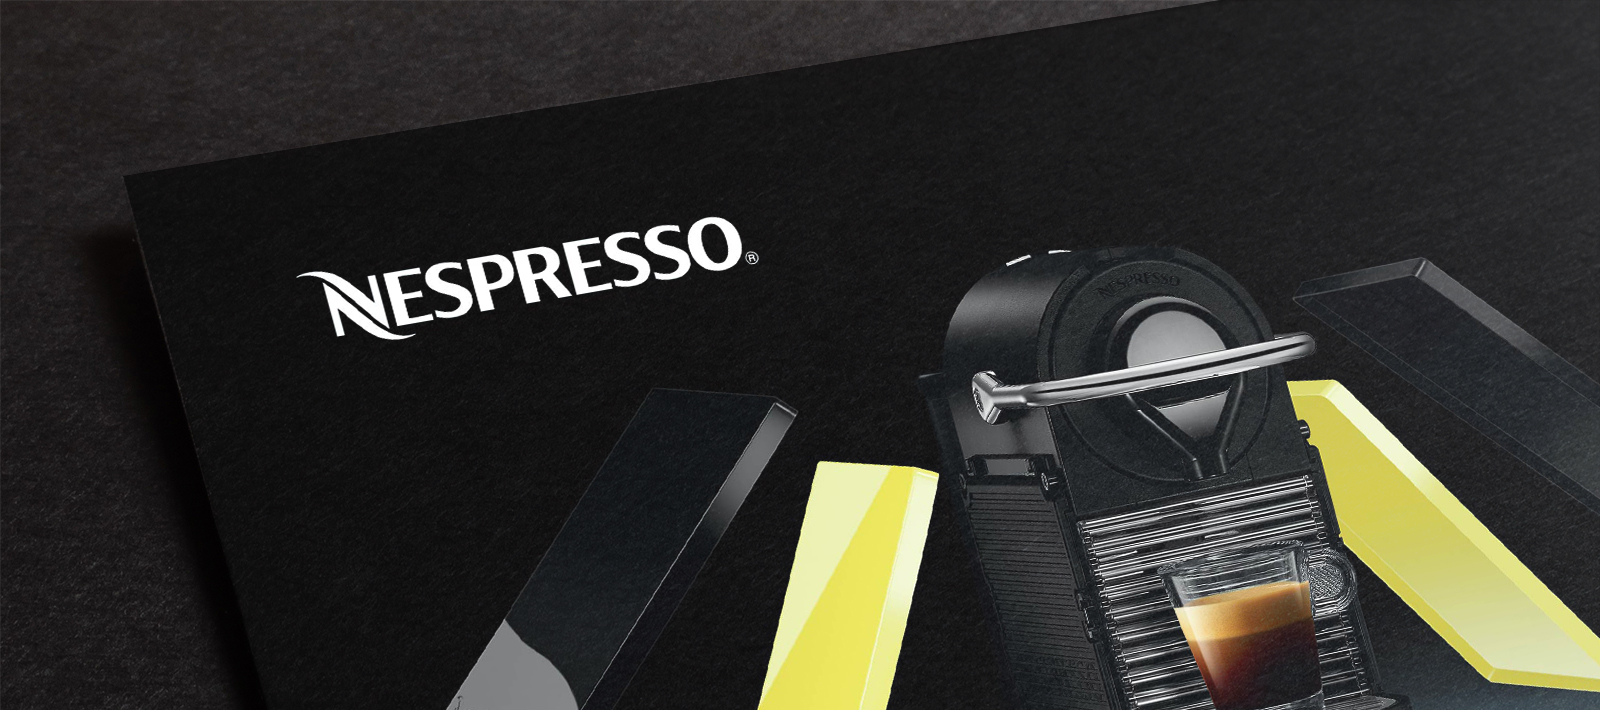 nespresso marketing case study The essay identifies the key marketing efforts which nespresso utilised to speed up the diffusion process and develop worldwide consumer acceptance d i f f u s i o n o f i n n o v a t i o n s: n e s p r e s s o 4  a study of fmcg companies by ghoshal and bartlett (1988) considered the effects of subsidiaries for.